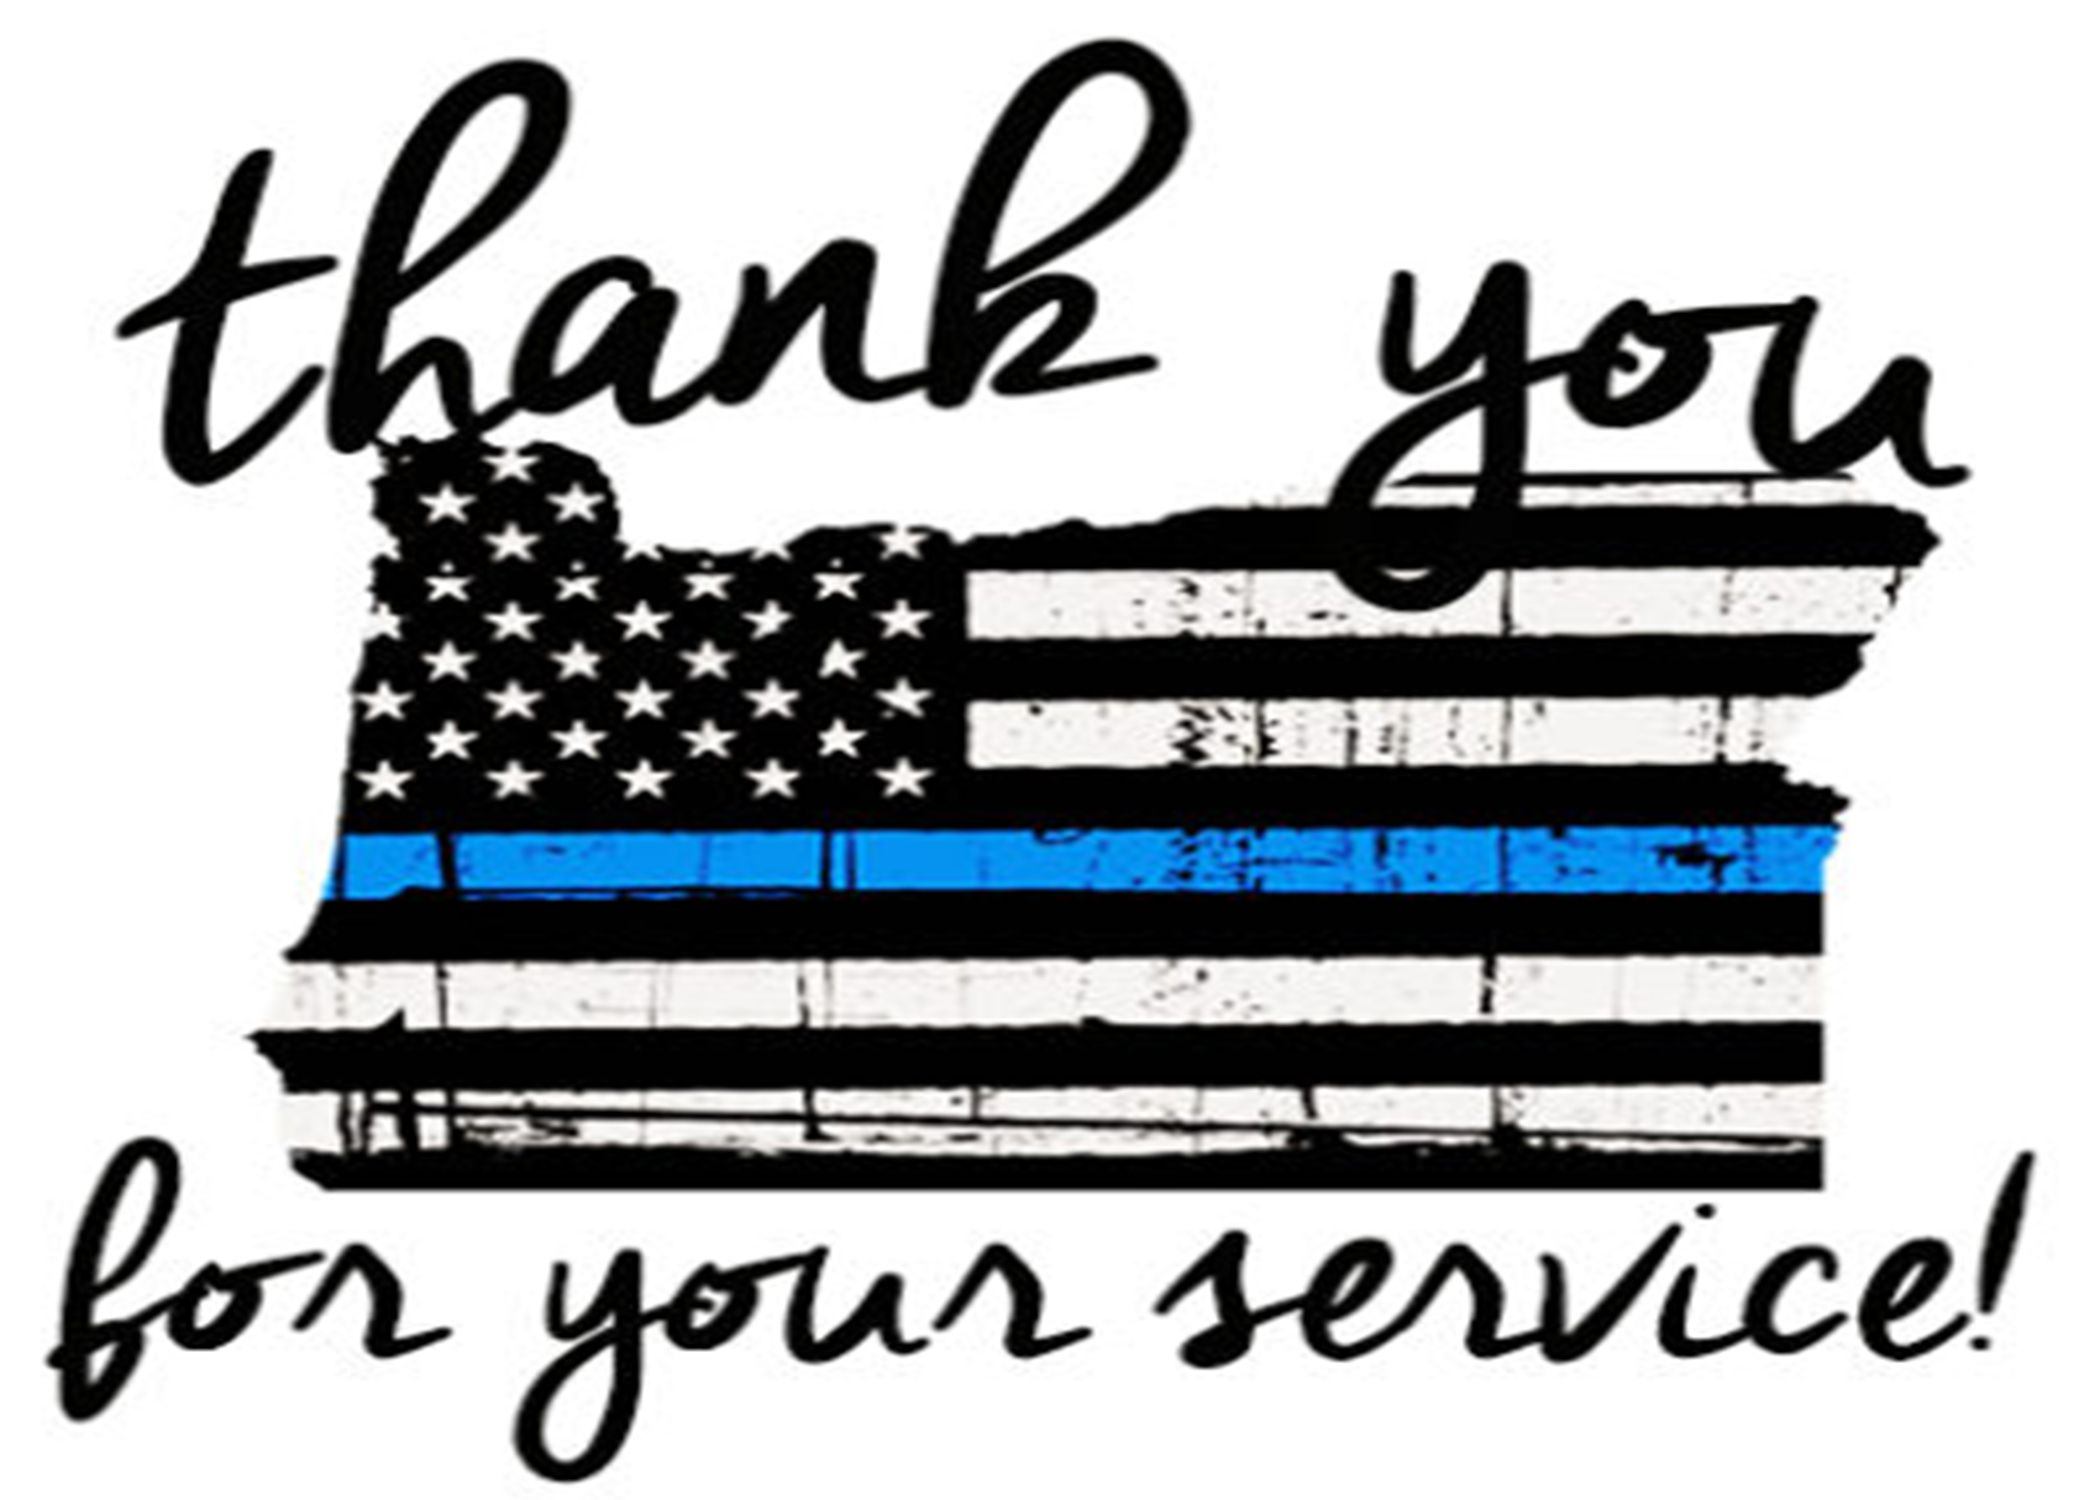 Thank You For Protecting Serving Our Communities Lhcpd Mohavecountysheriff And A Law Enforcement Appreciation Law Enforcement Quotes Police Appreciation